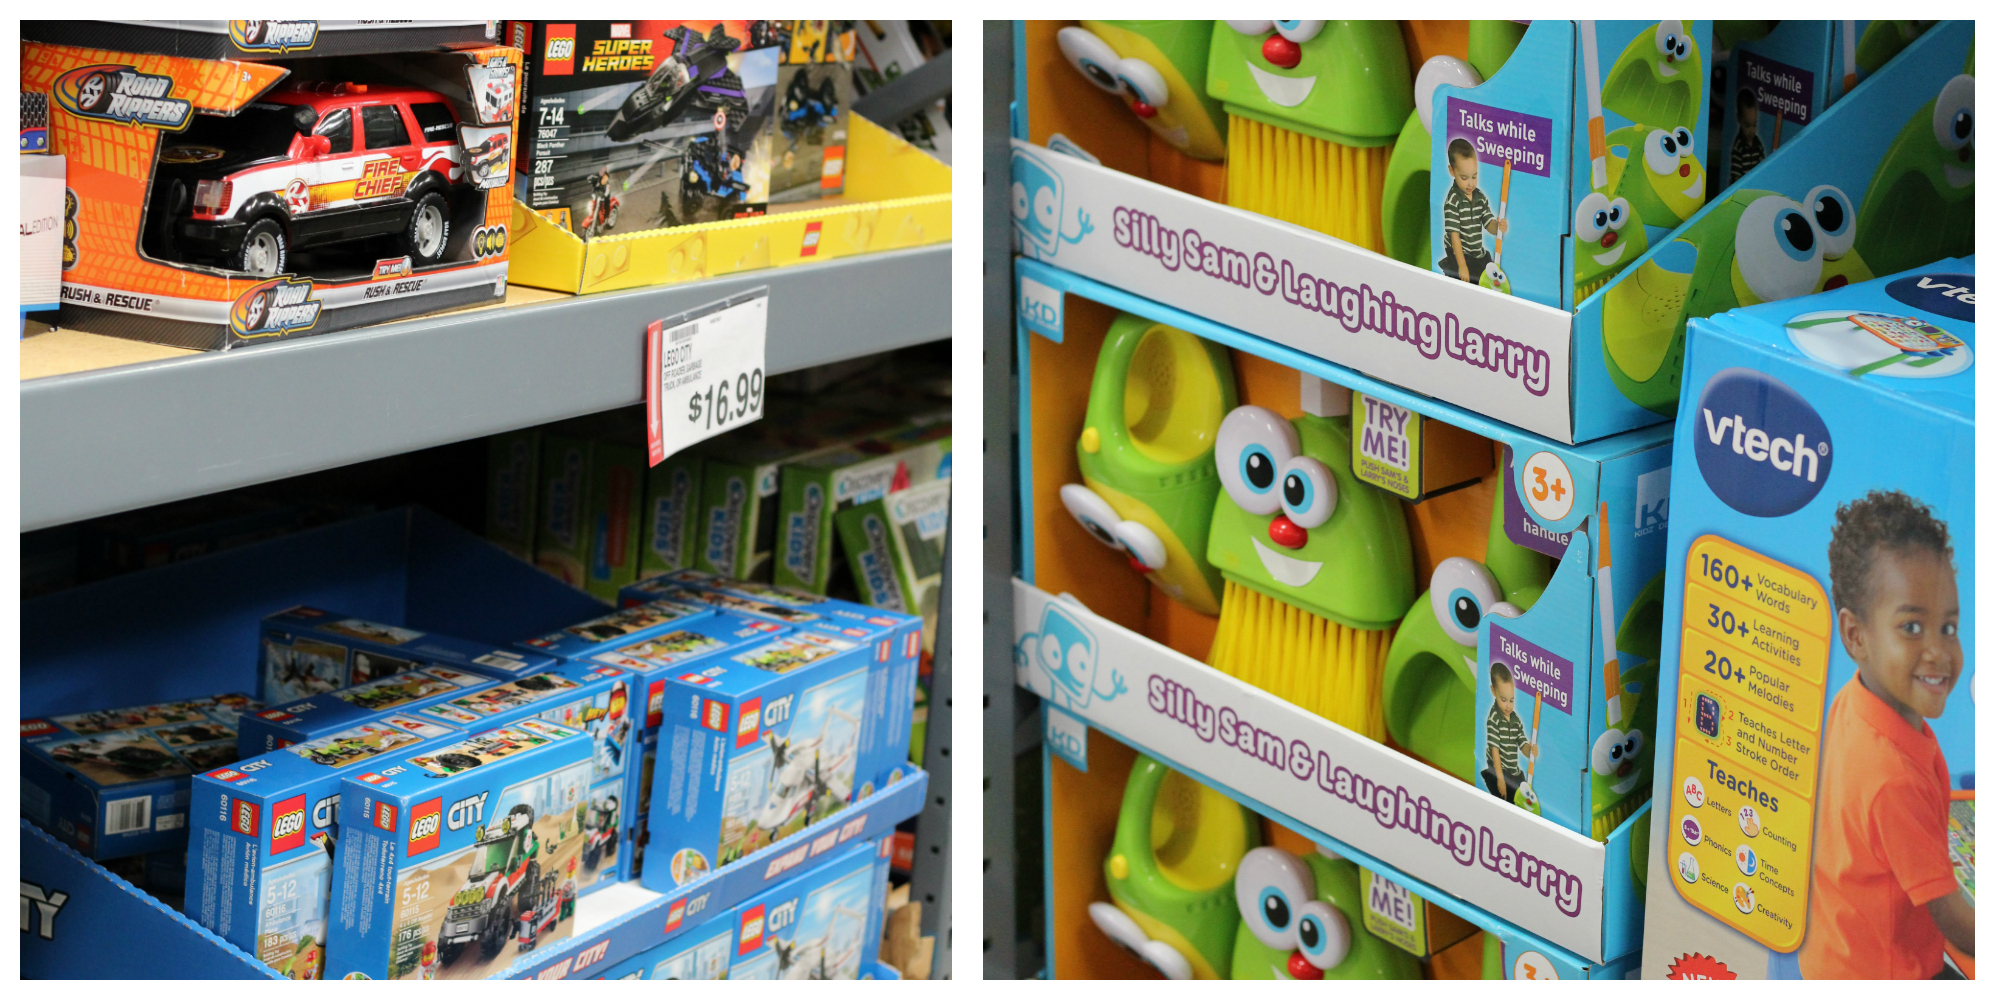 BJs Wholesale Club - Toys and Electronics